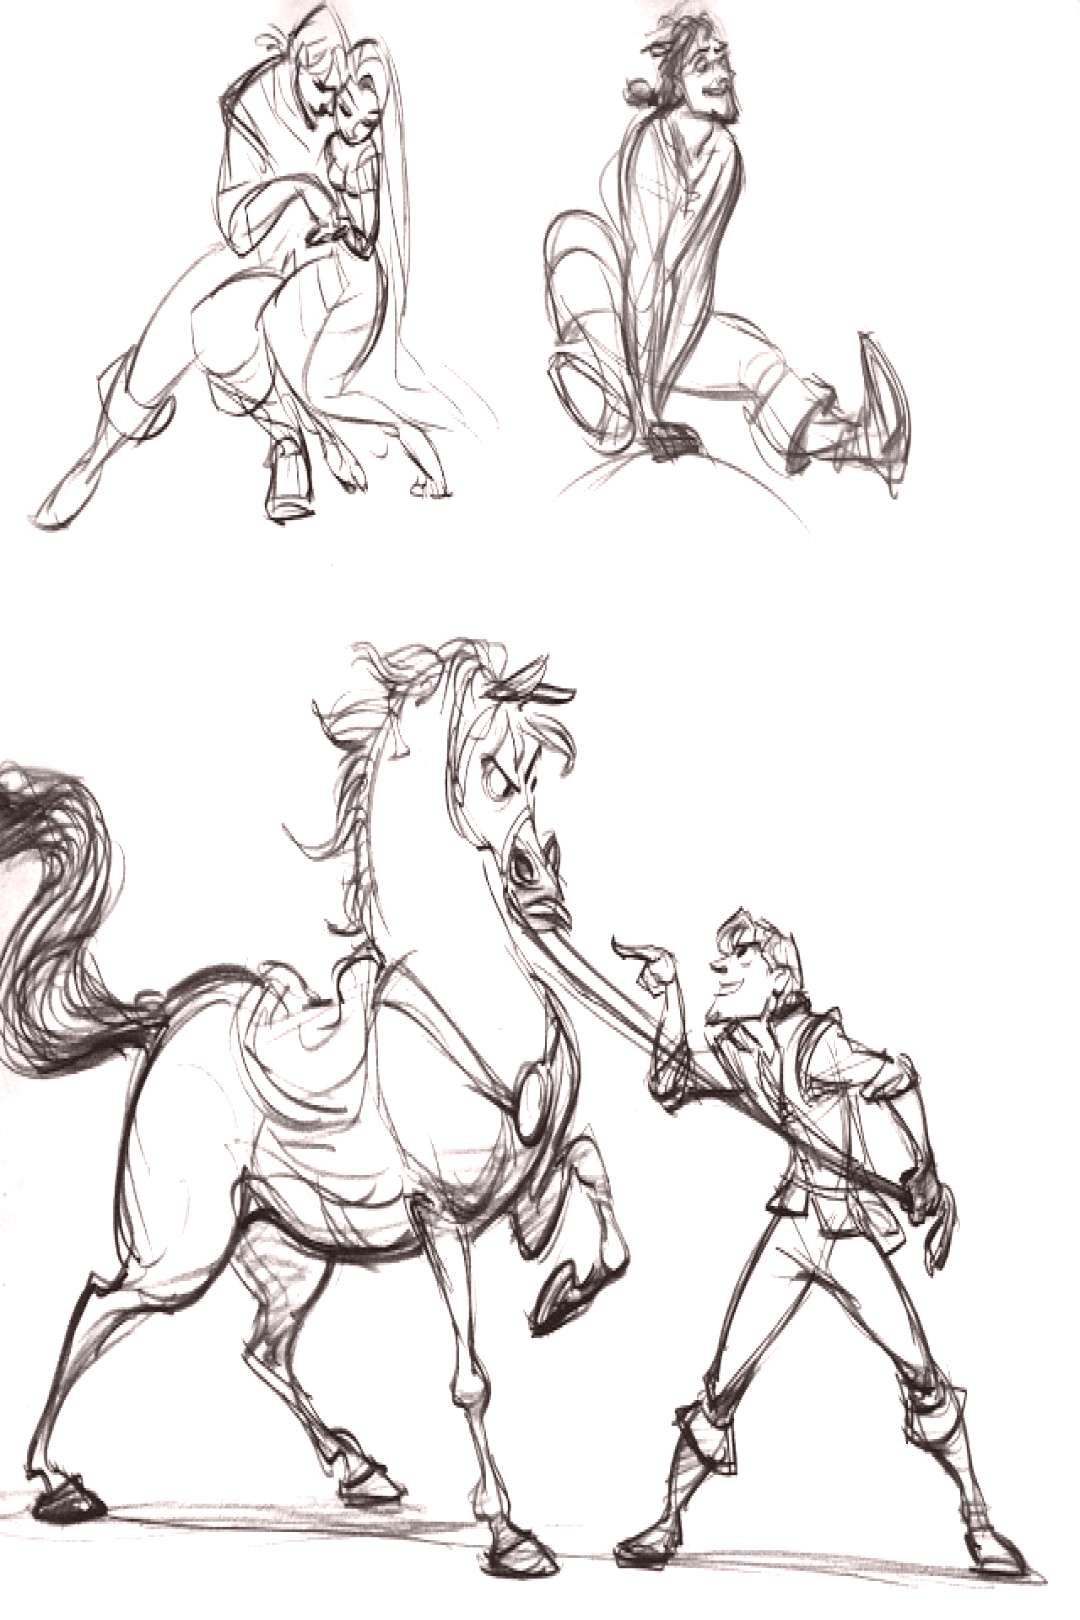 Flooby Nooby The Art of Glen Keane Best Picture For Character Design hero For Your Taste You a